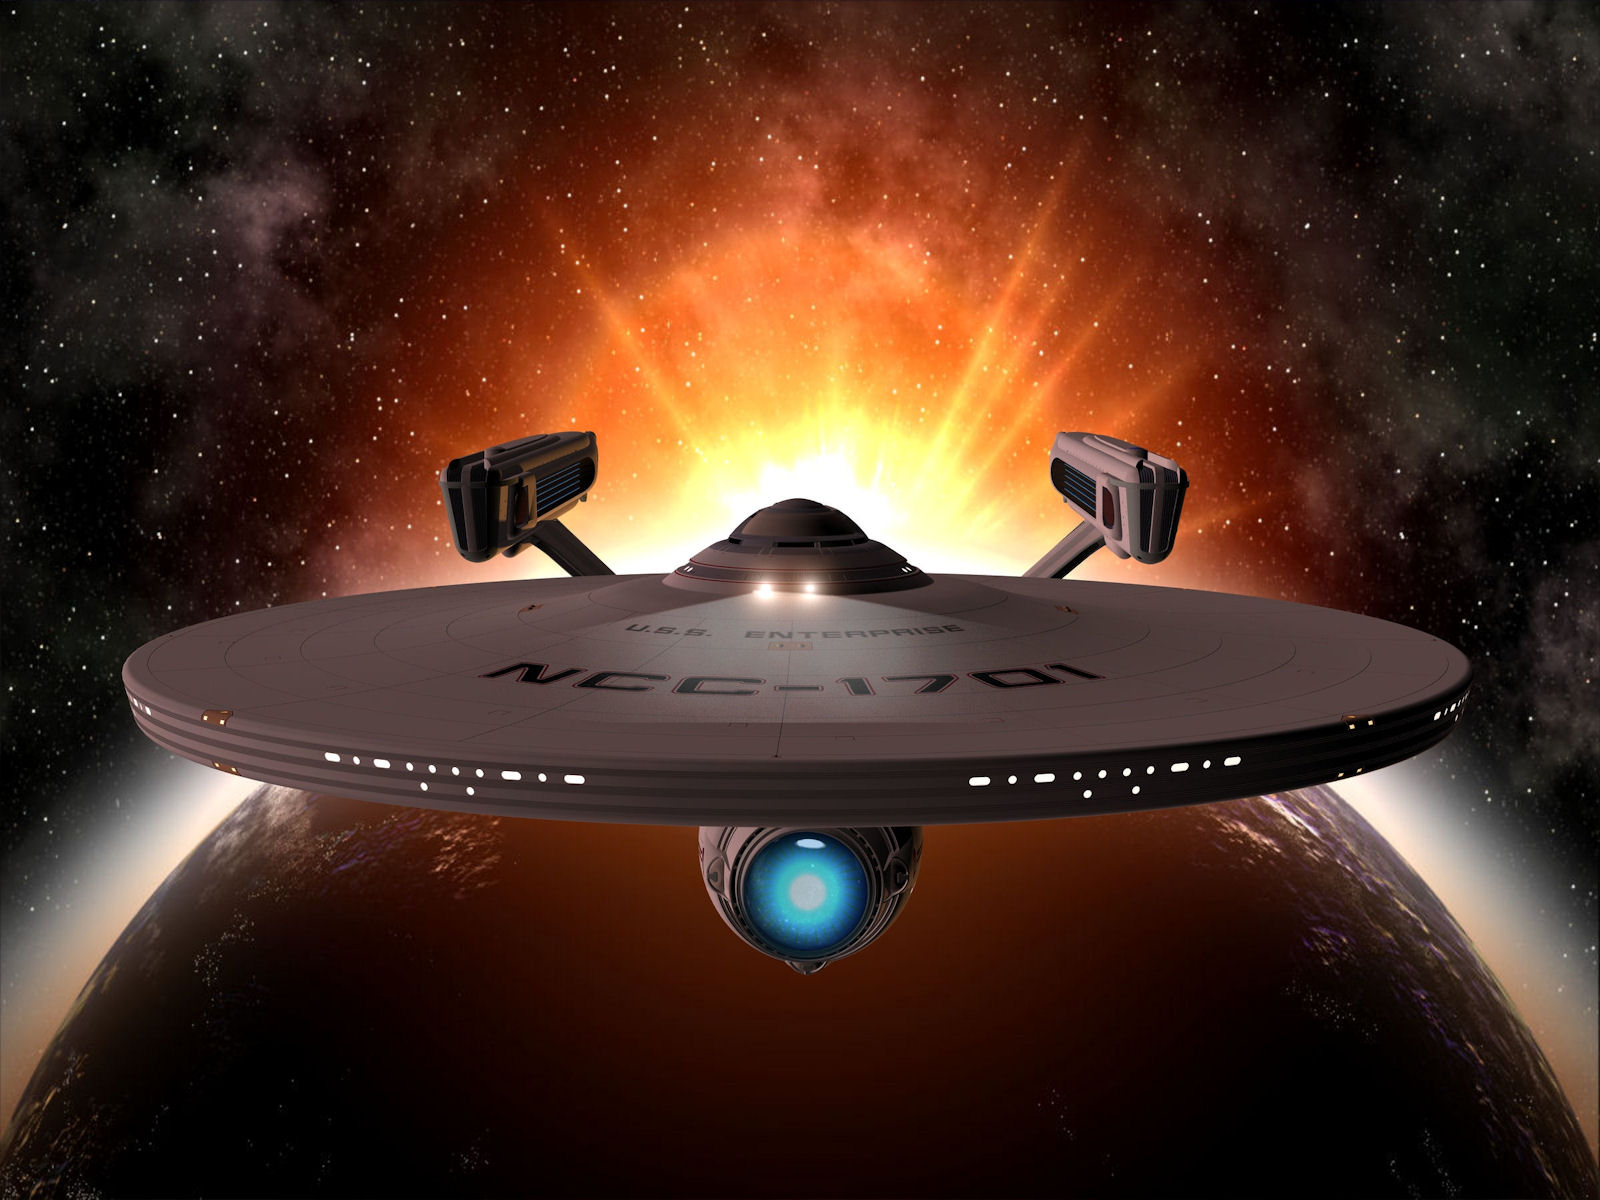 Favori Star Trek Wallpaper and Background | 1600x1200 | ID:281434 ZA88